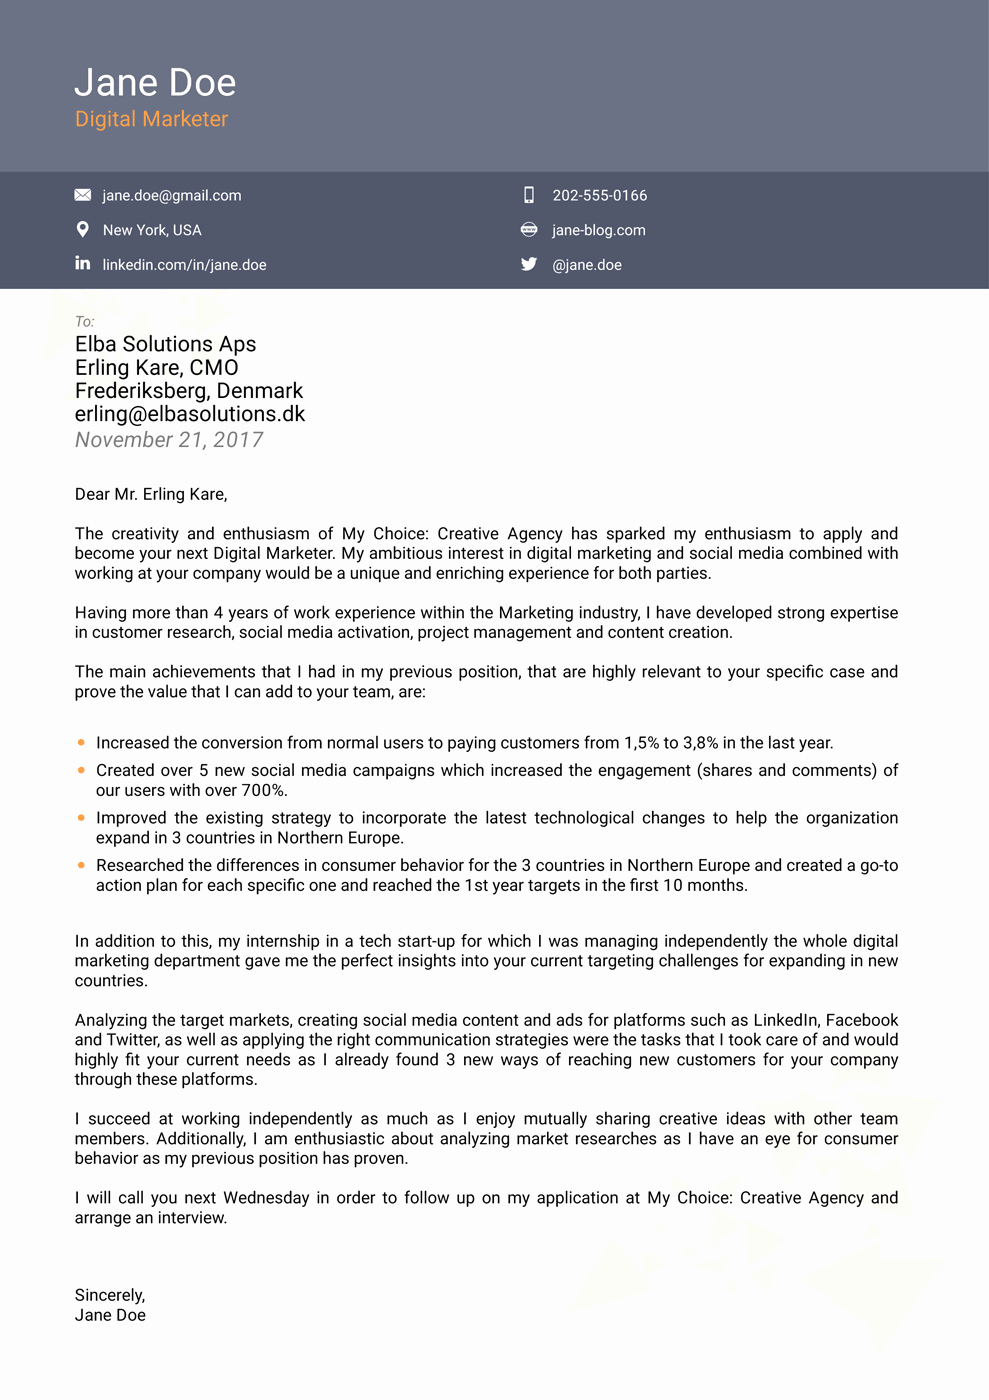 Template Of A Cover Letter Awesome Cover Letter Templates for 2019